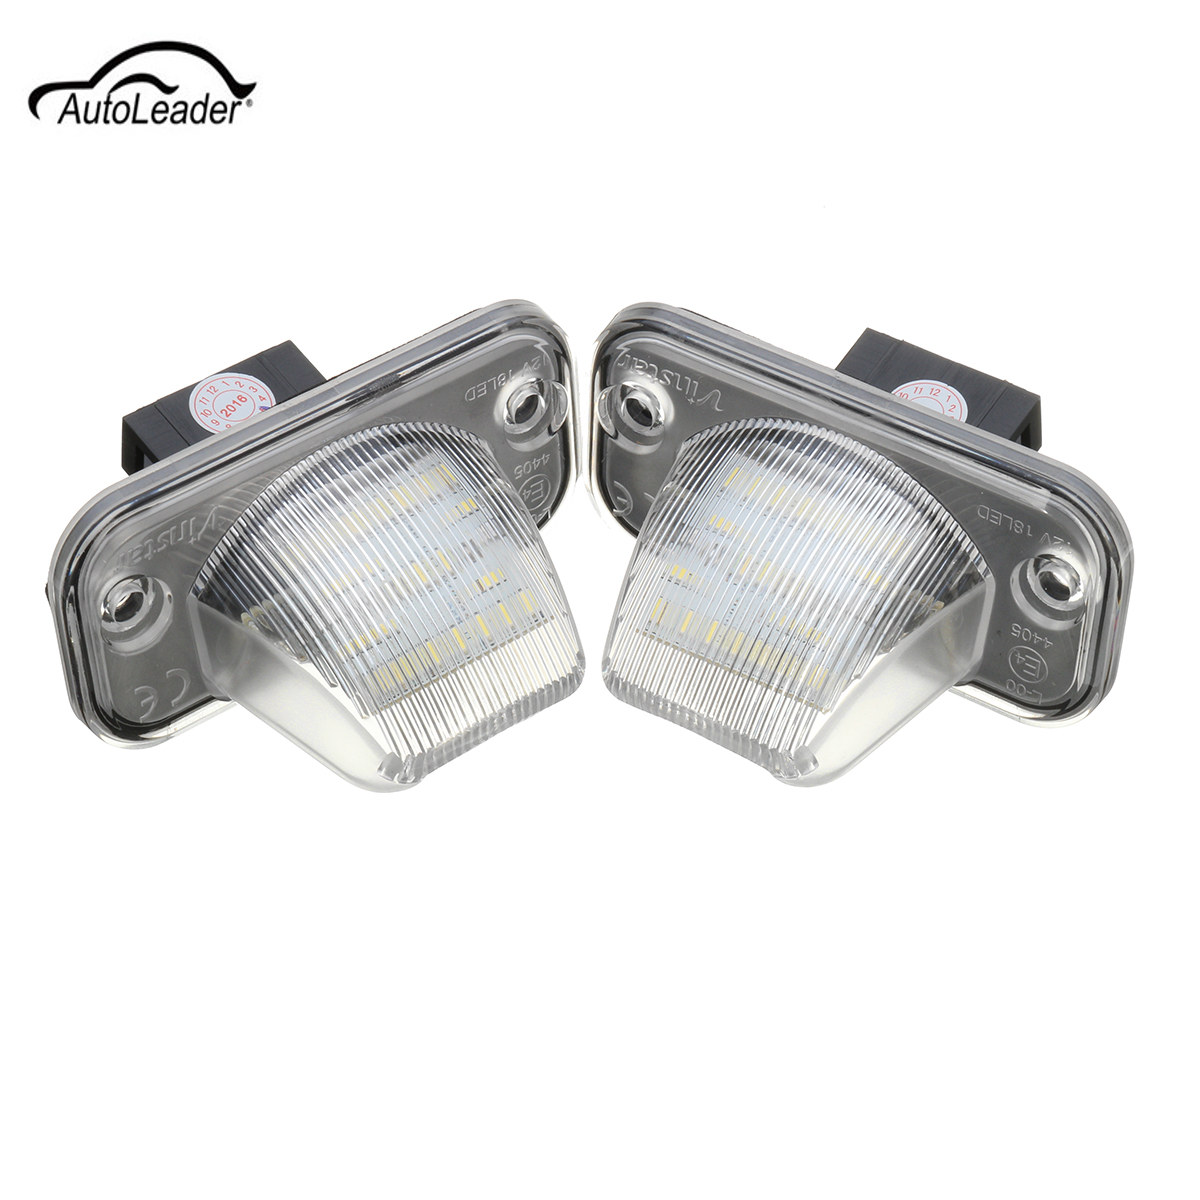 2Pcs 18 LED Car License Plate Light Error Free Number Plate Lamp For Volkswagen/VW/T4/Transporter/Passat  2x error free led license plate light for volkswagen vw passat 5d passat r36 08